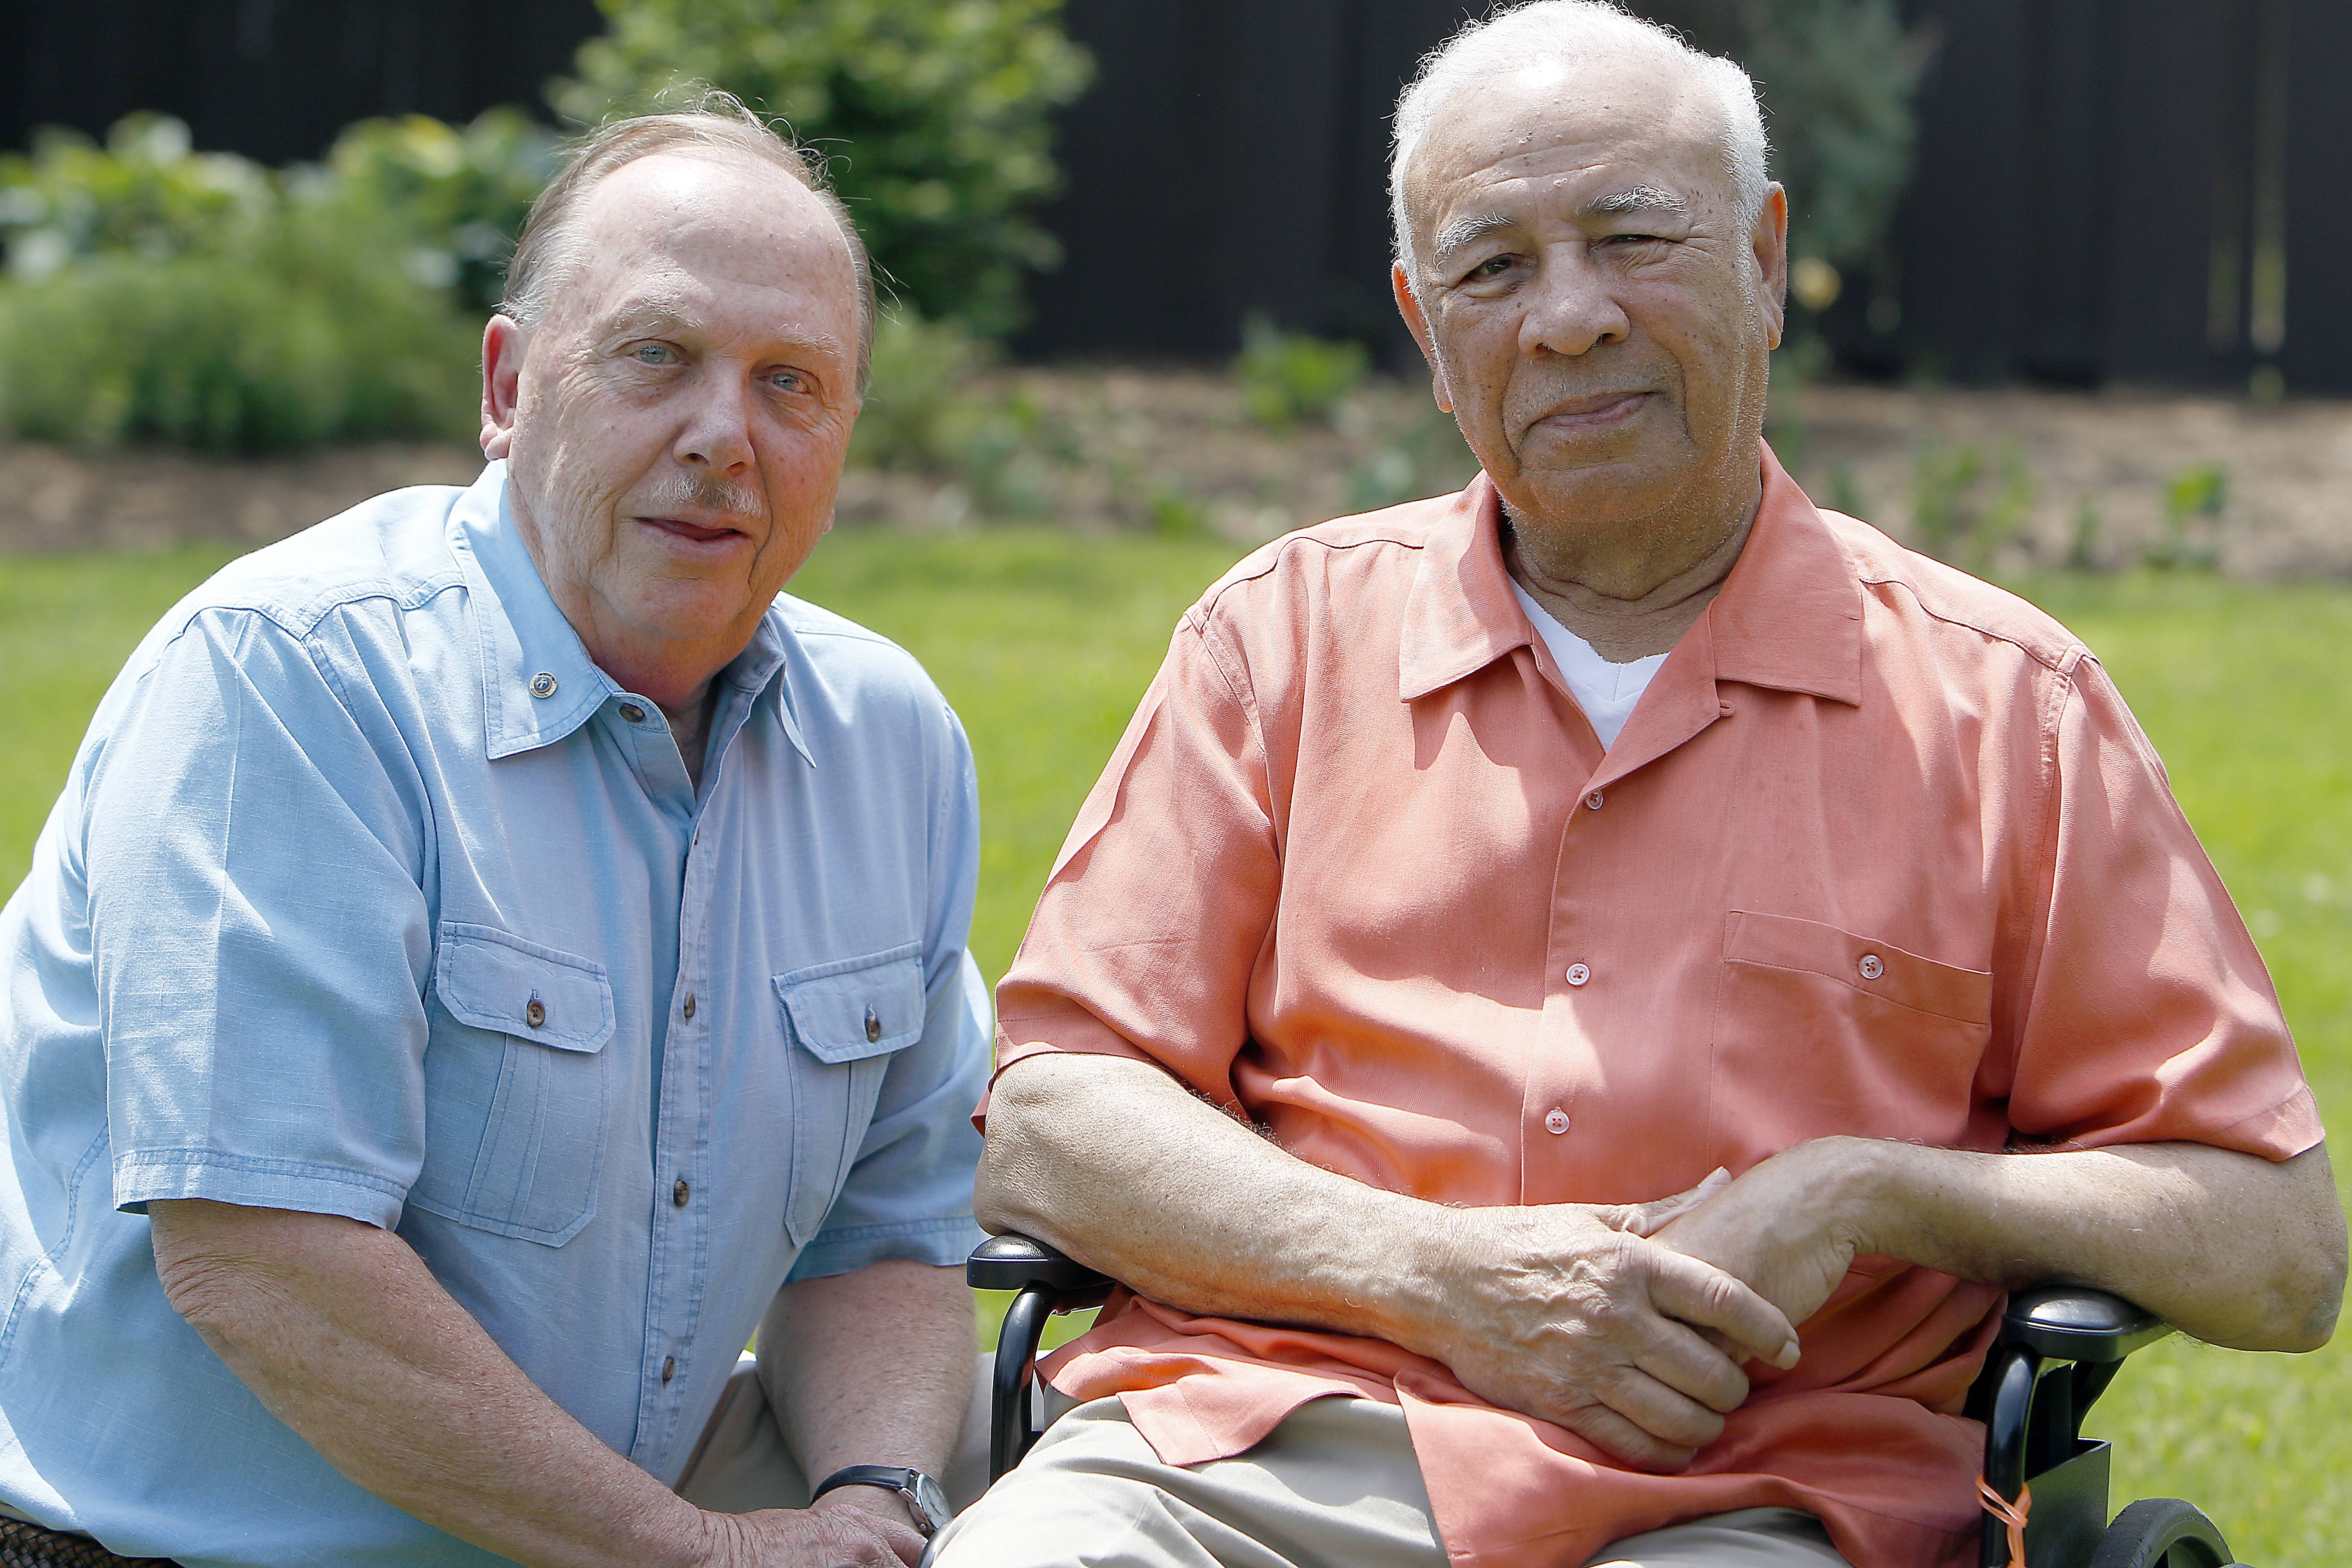 Floyd Brown, right, of Elgin and Tom Petersen of Streamwood, will be inducted Friday into WGN Radio's Walk of Fame.